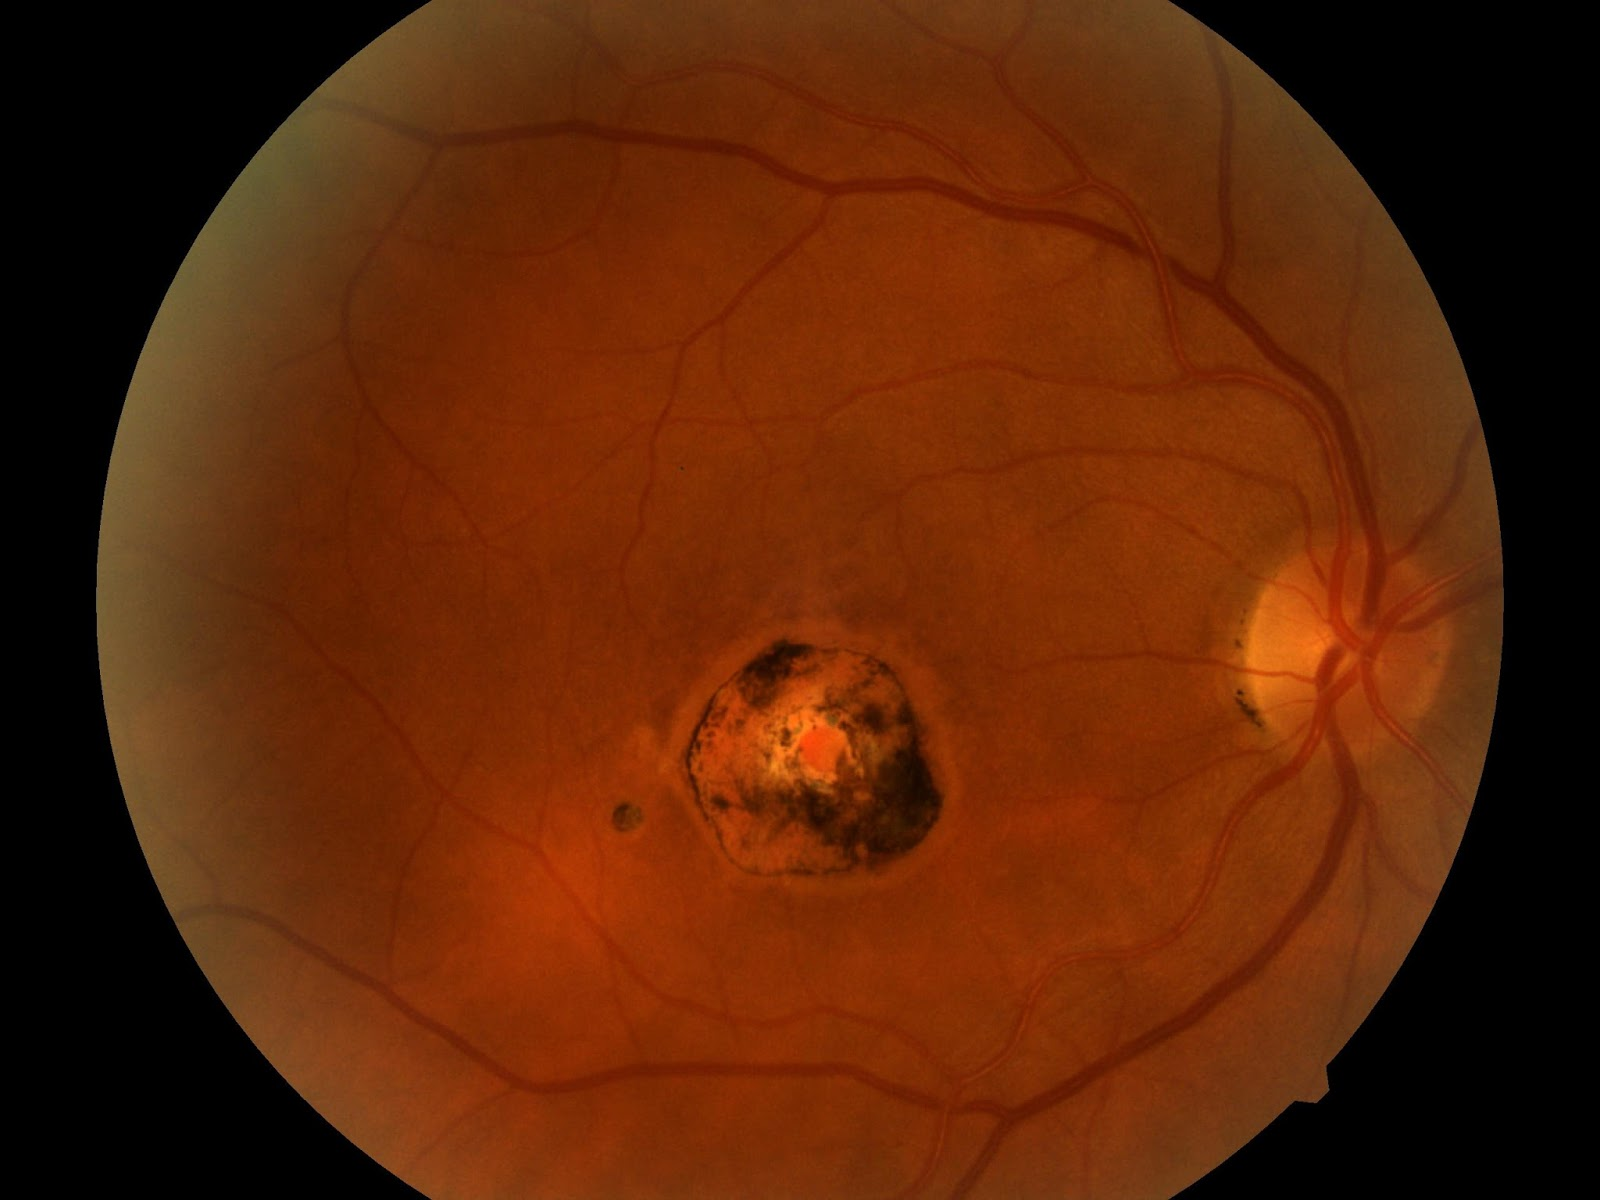 Below Is A Chorioretinal Scar In The Macula Of The Right Eye. Differential  Diagnosis Includes Presumed Ocular Histoplasmosis Syndrome (POHS) And ...  Presumed Ocular Histoplasmosis